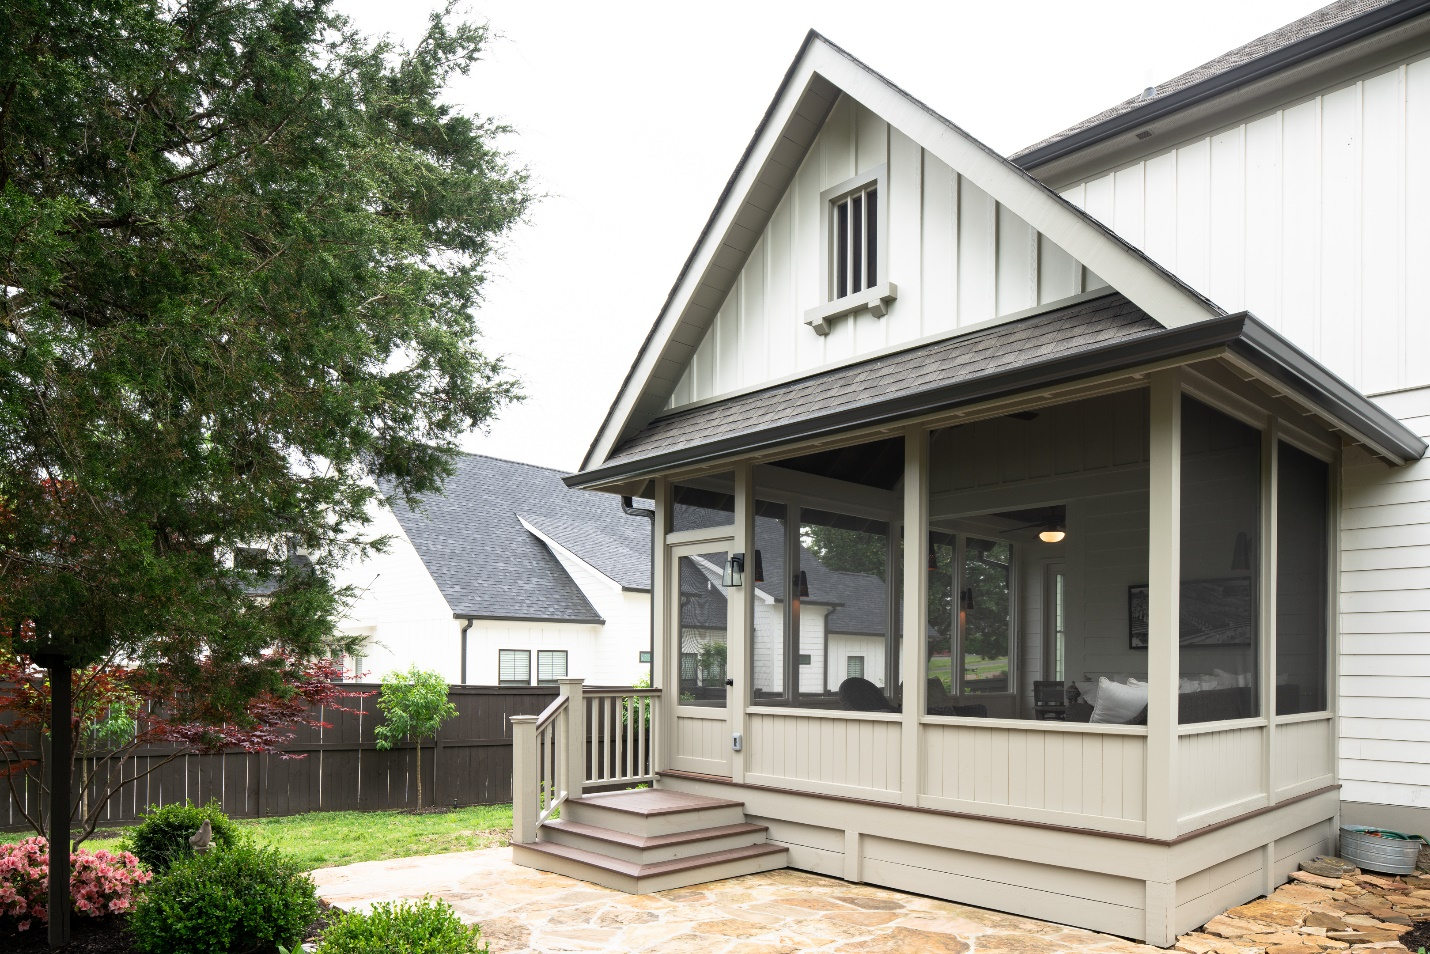 Hip roof on screened porch